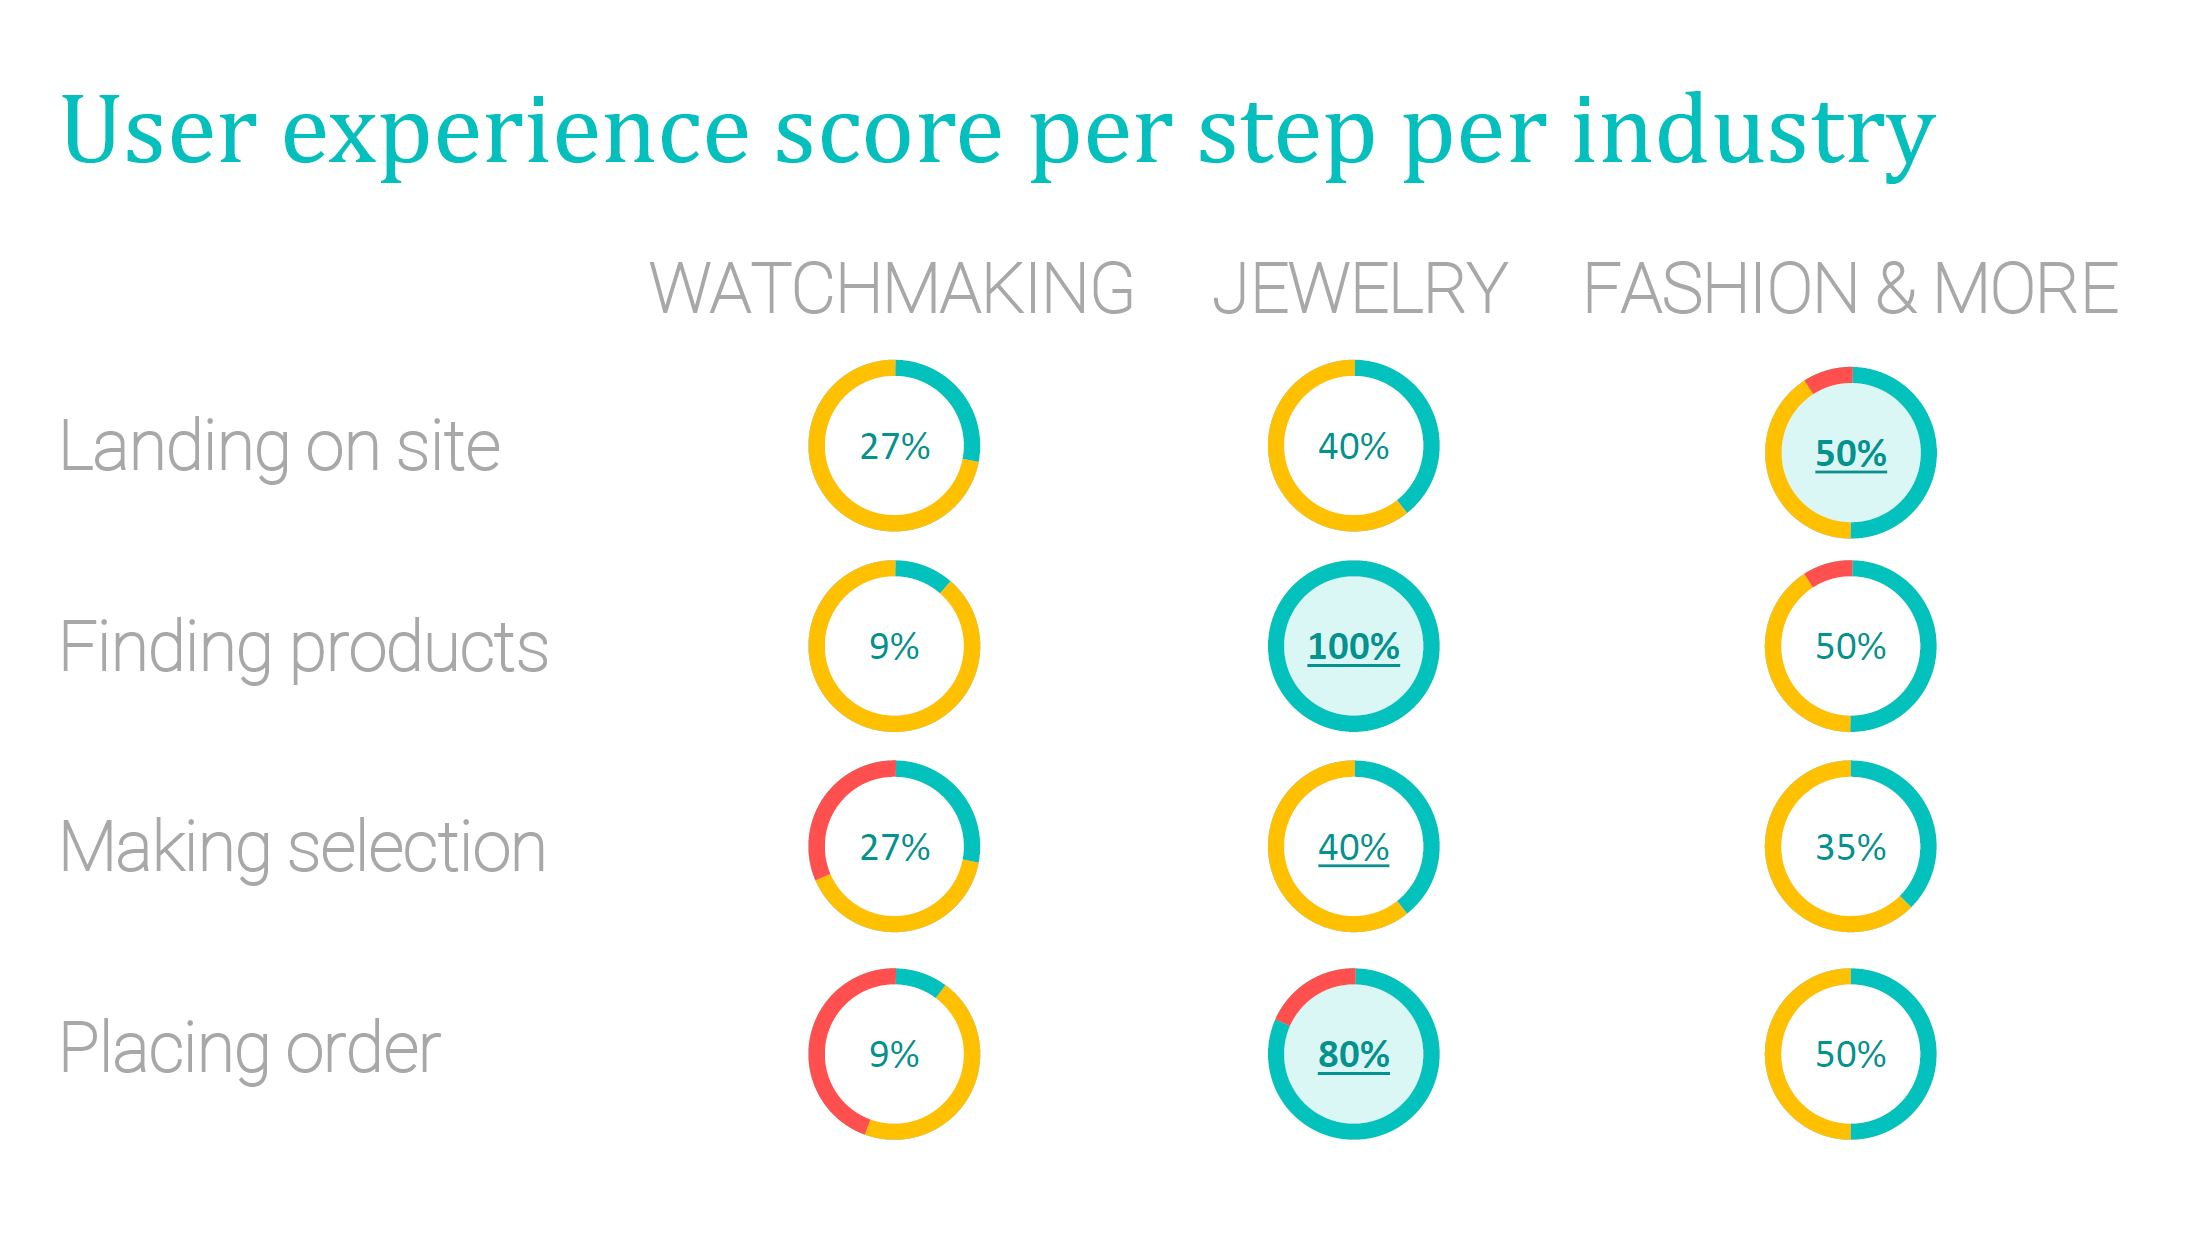 Luxury e-commerce UX Barometer 2017: User experience score per industry